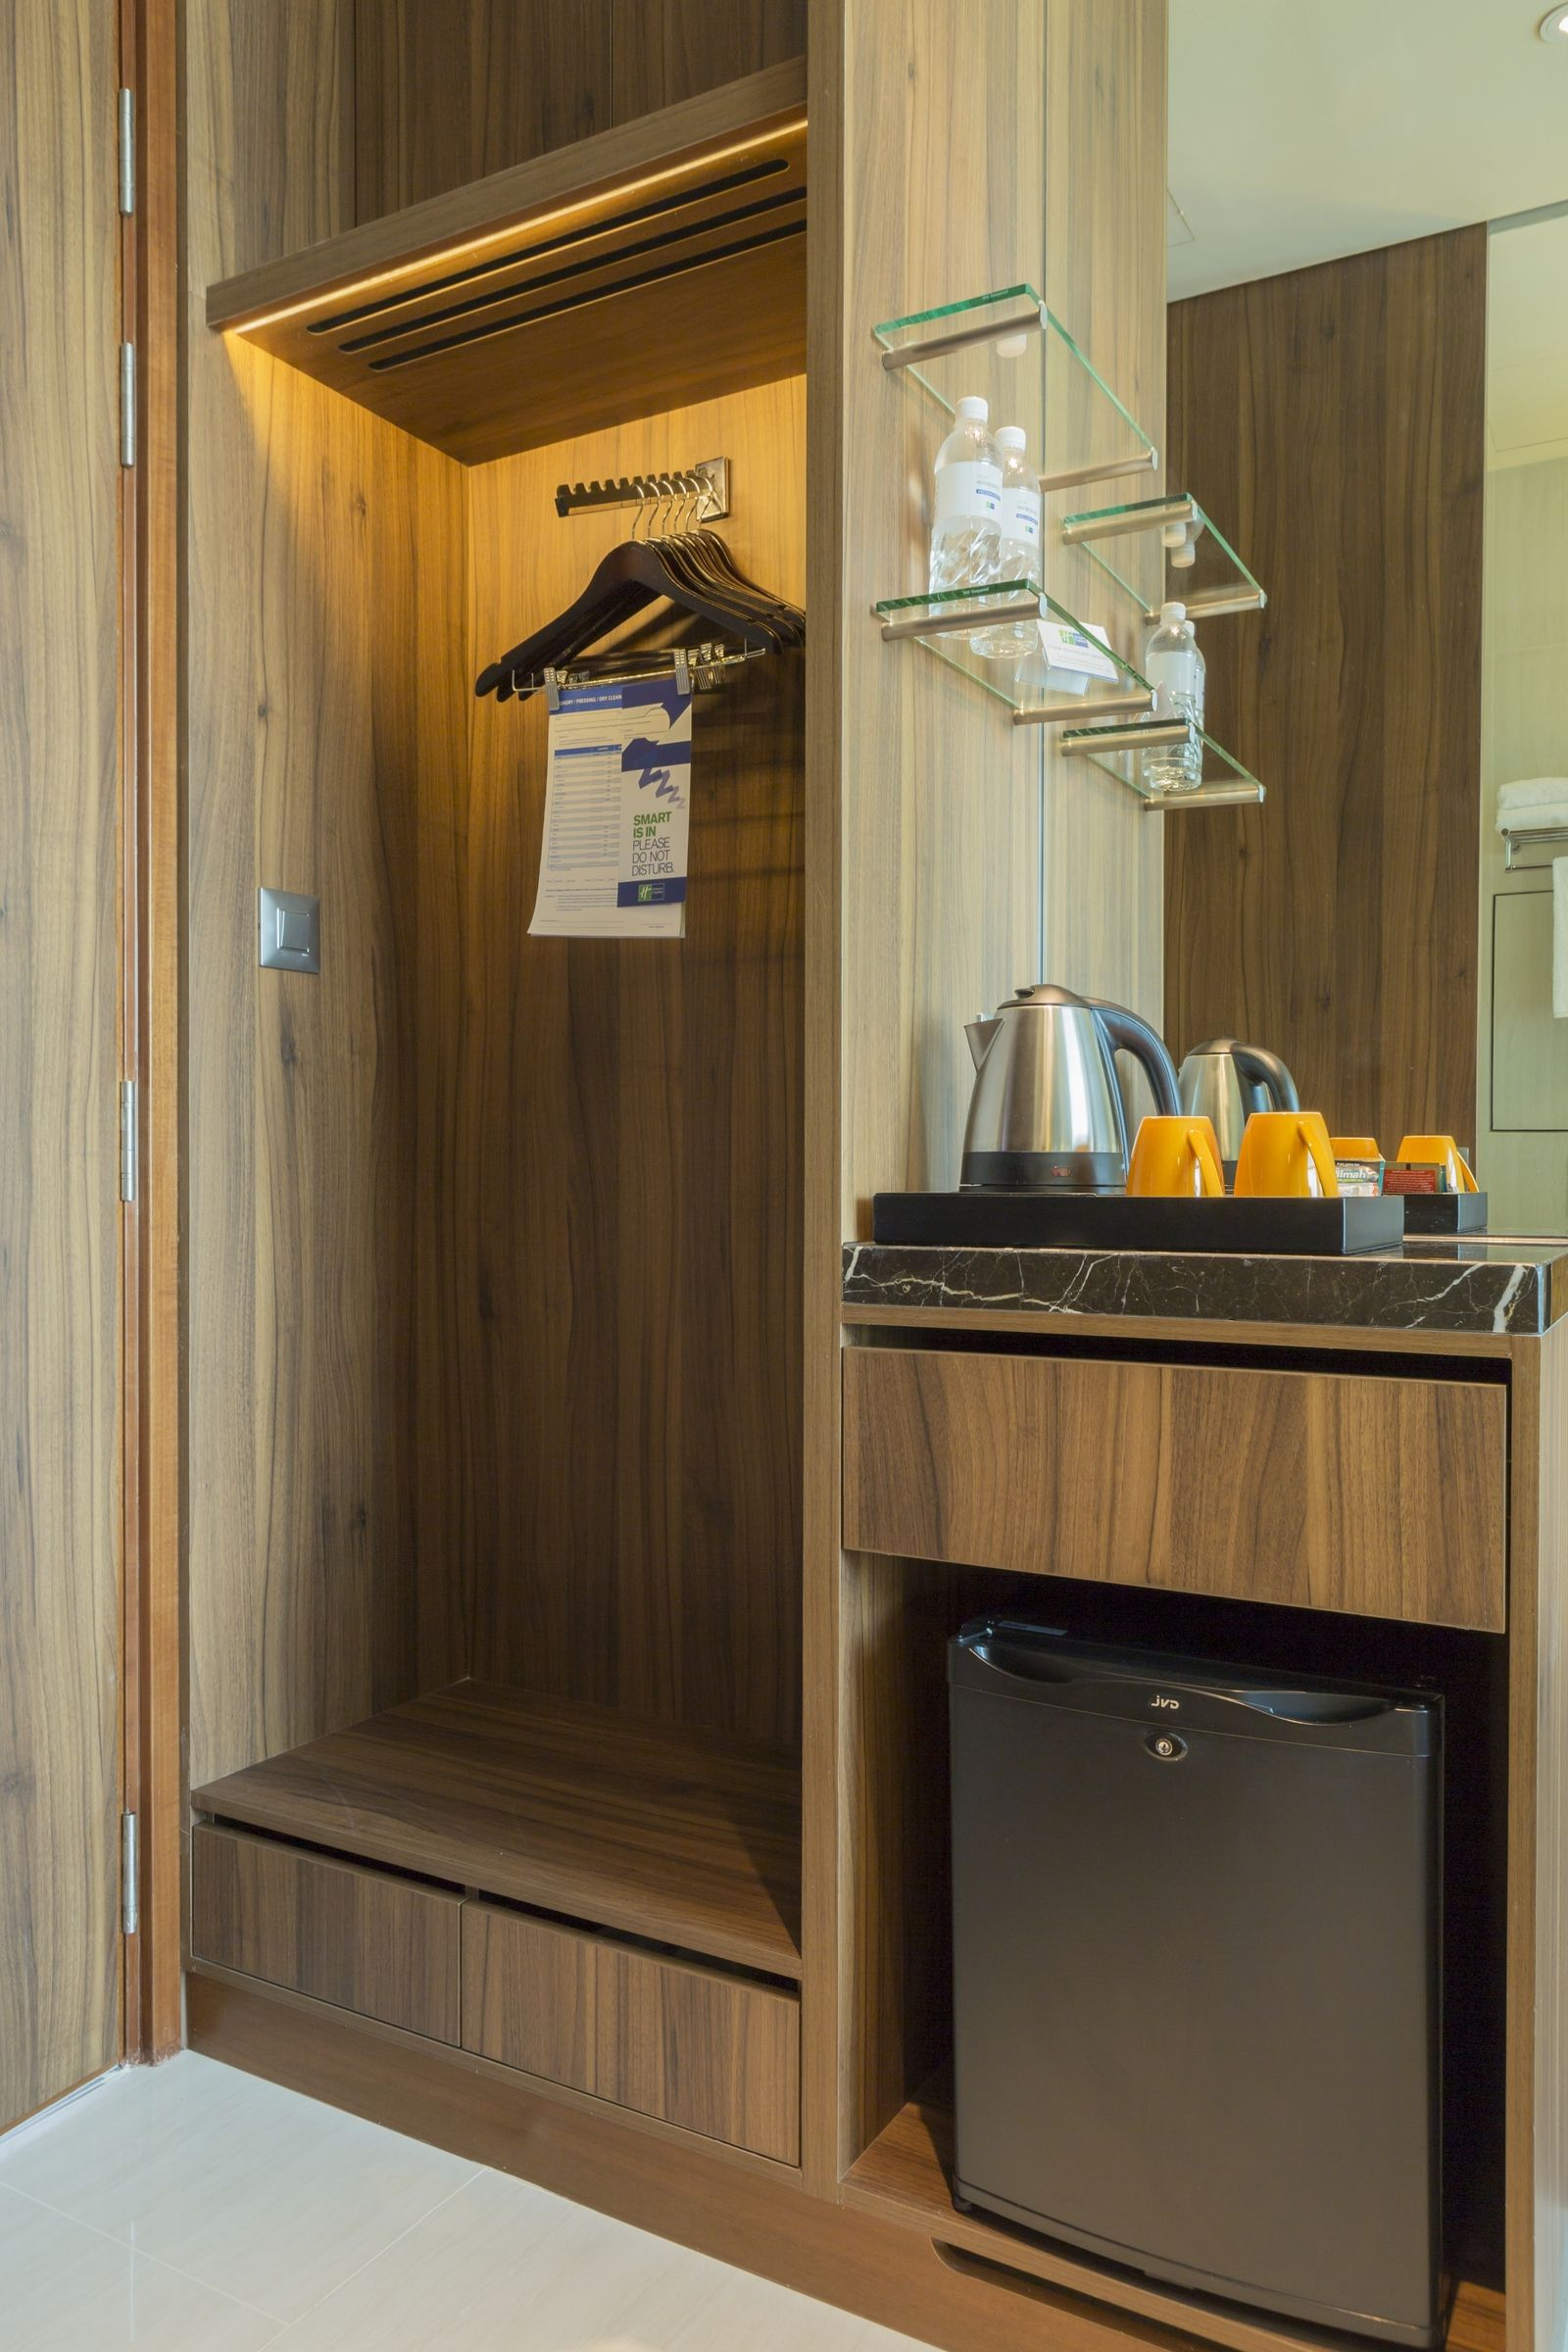 In Room Closet And Mini Fridge At Holiday Inn Express Singapore Clarke Quay